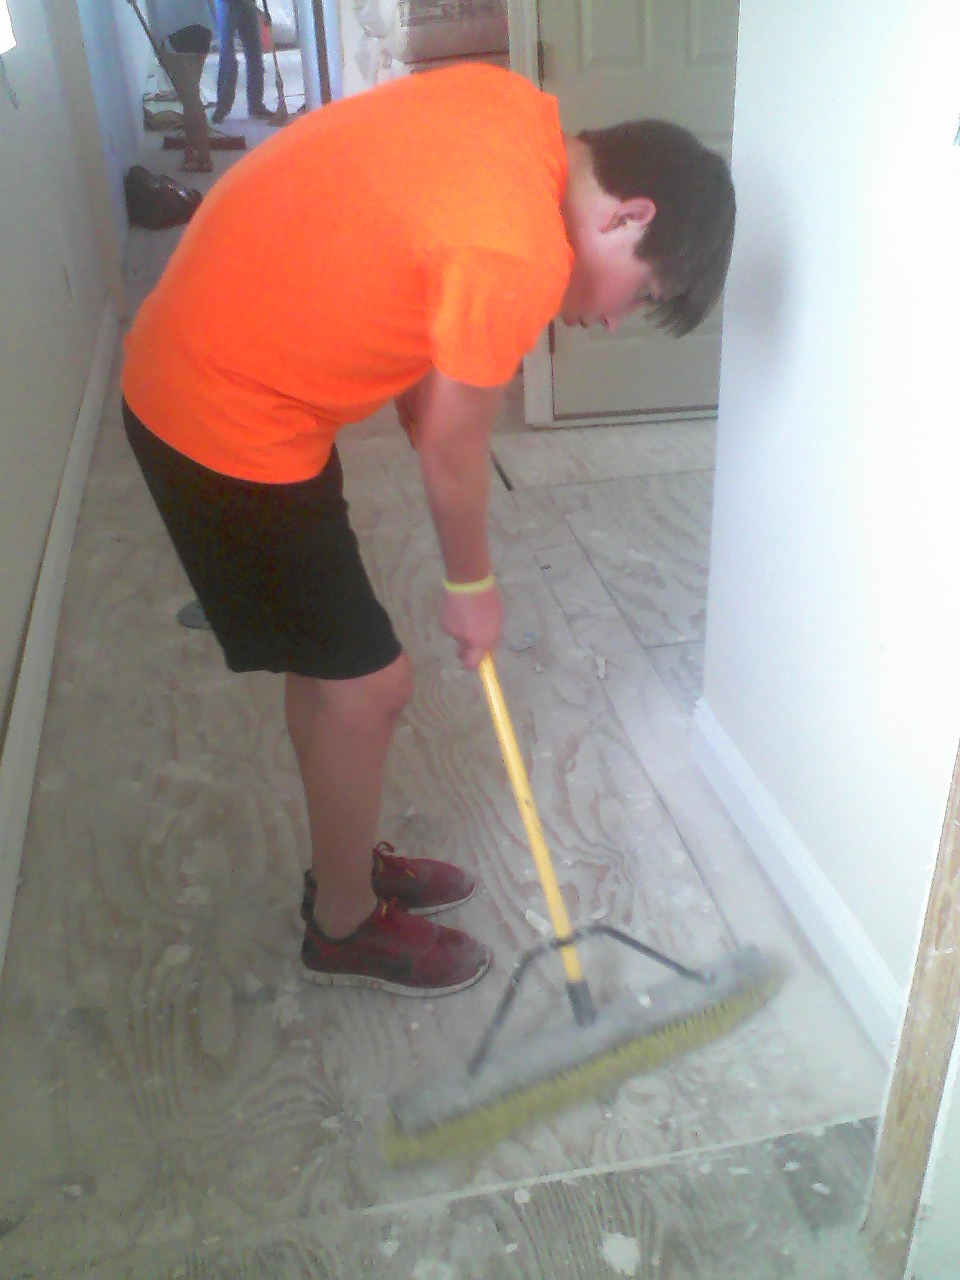 Sweeping it up.